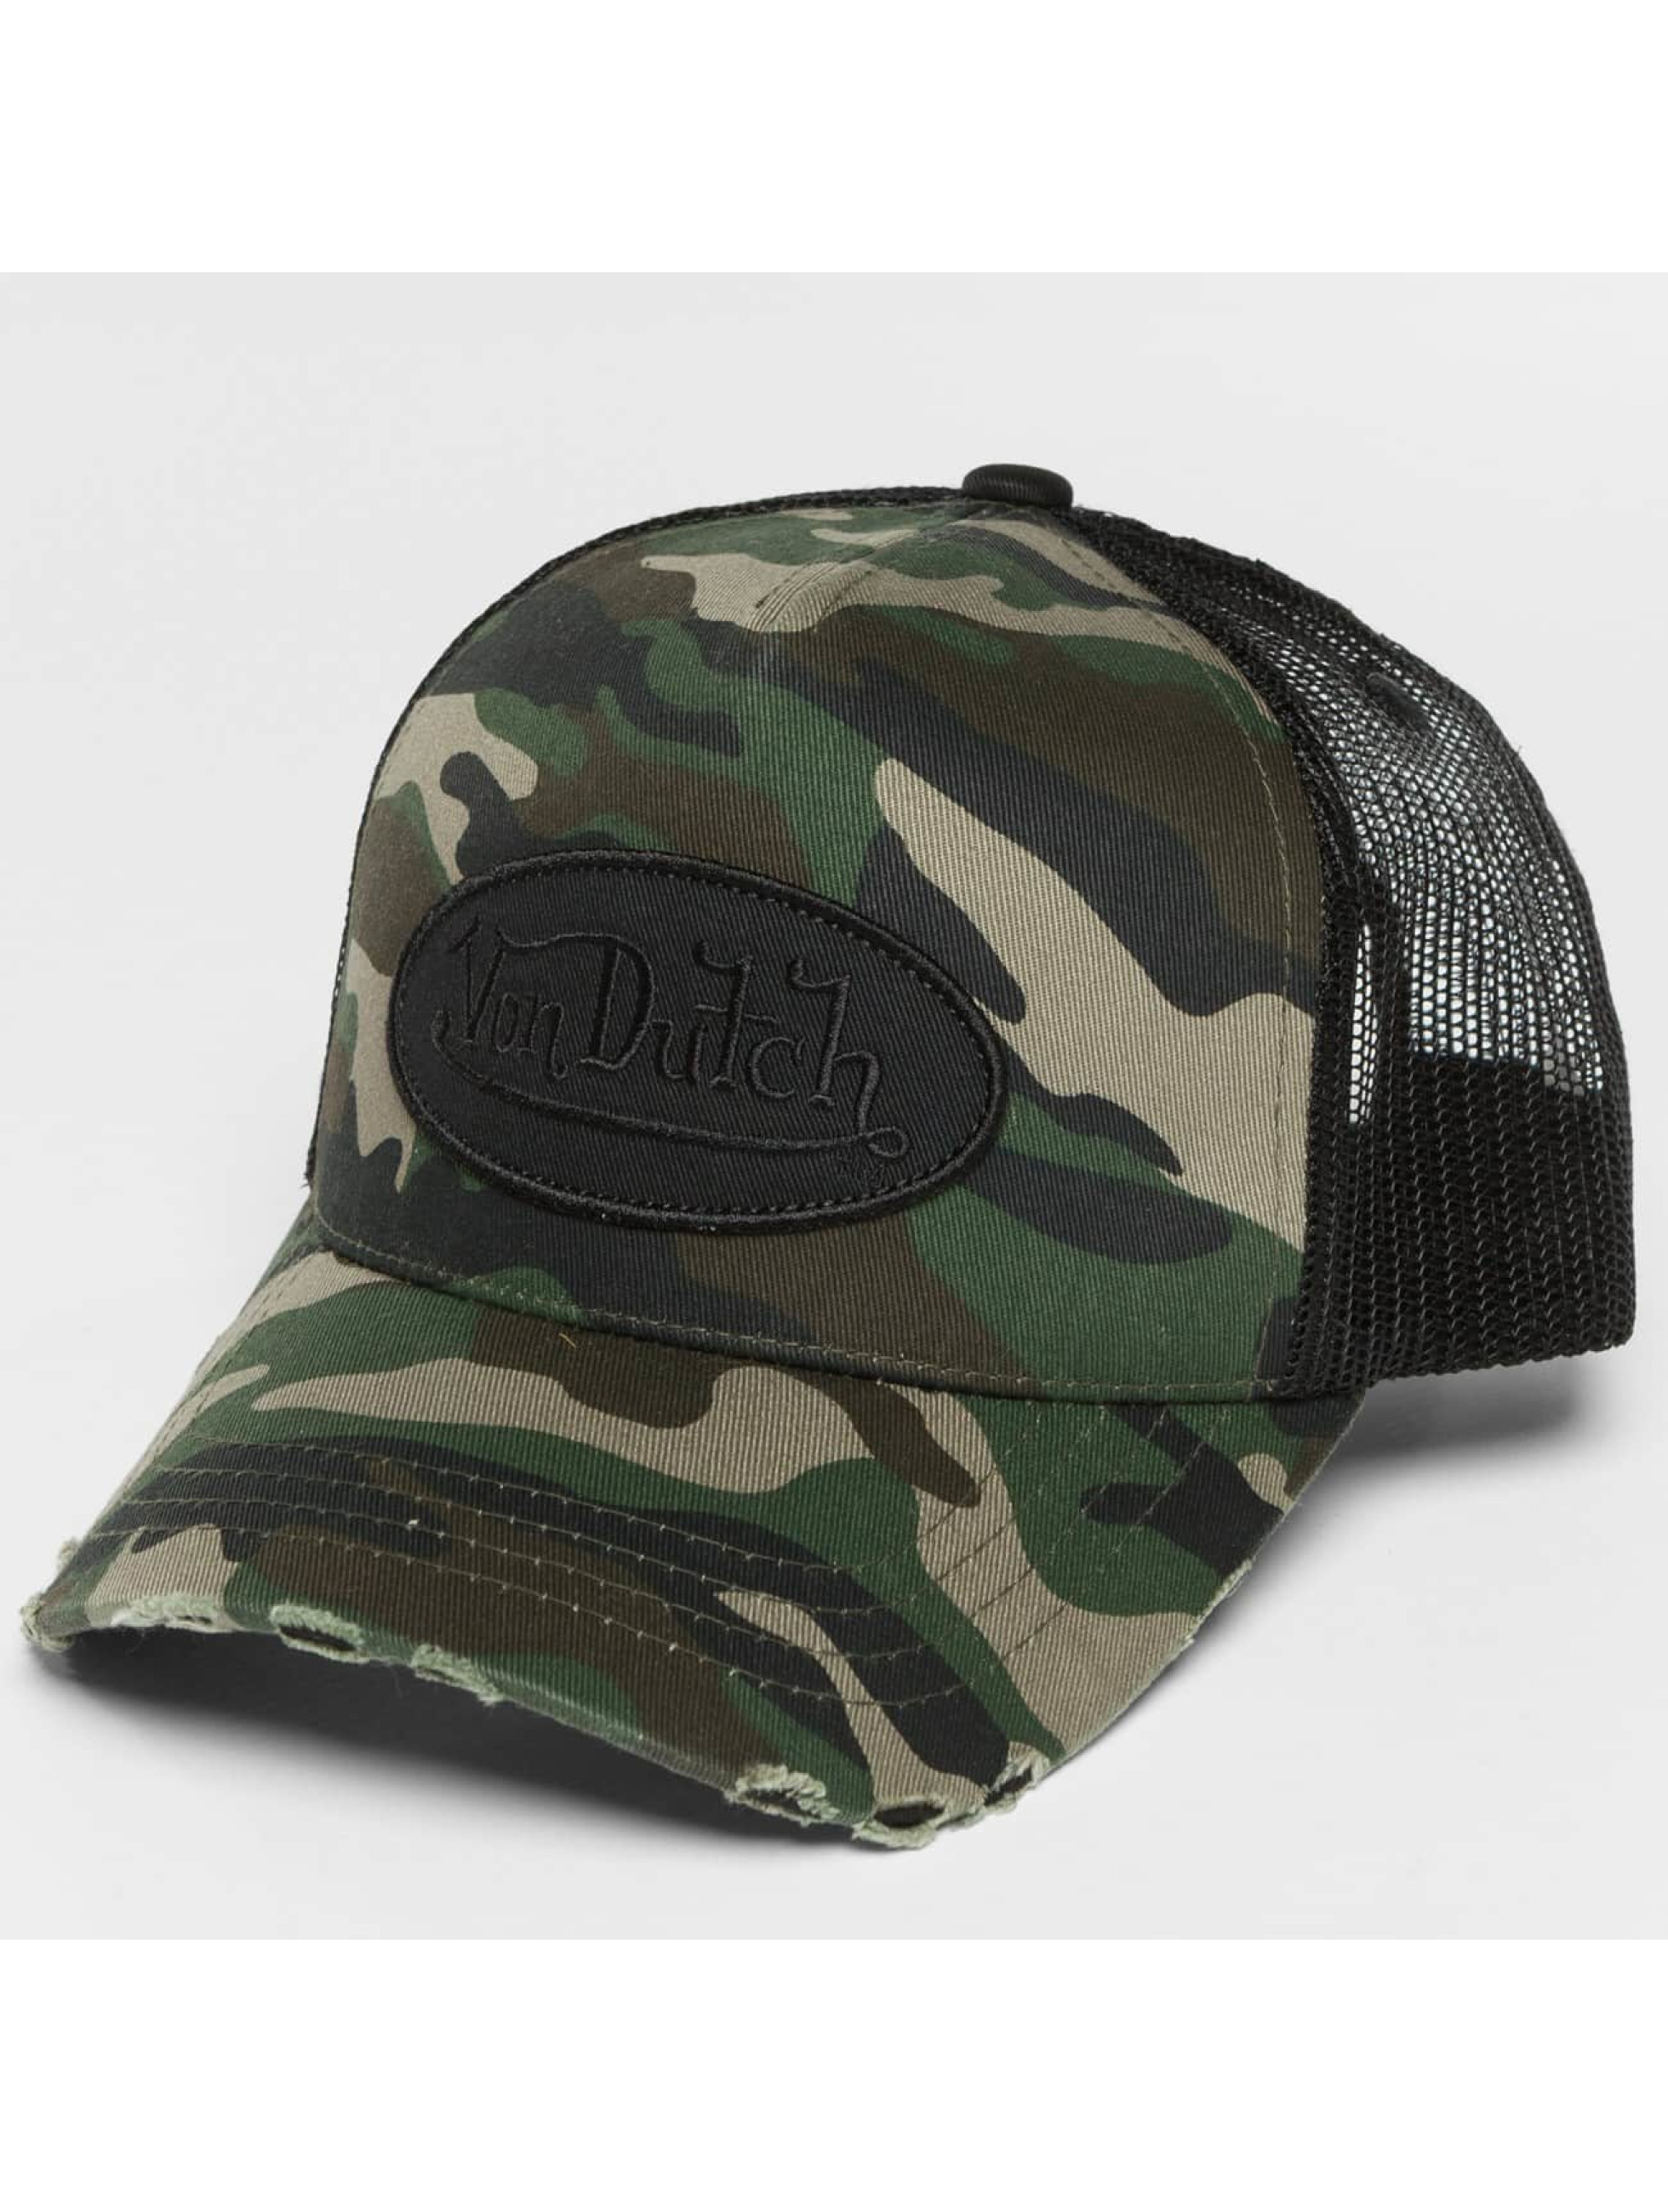 Von Dutch Trucker Caps Camo moro